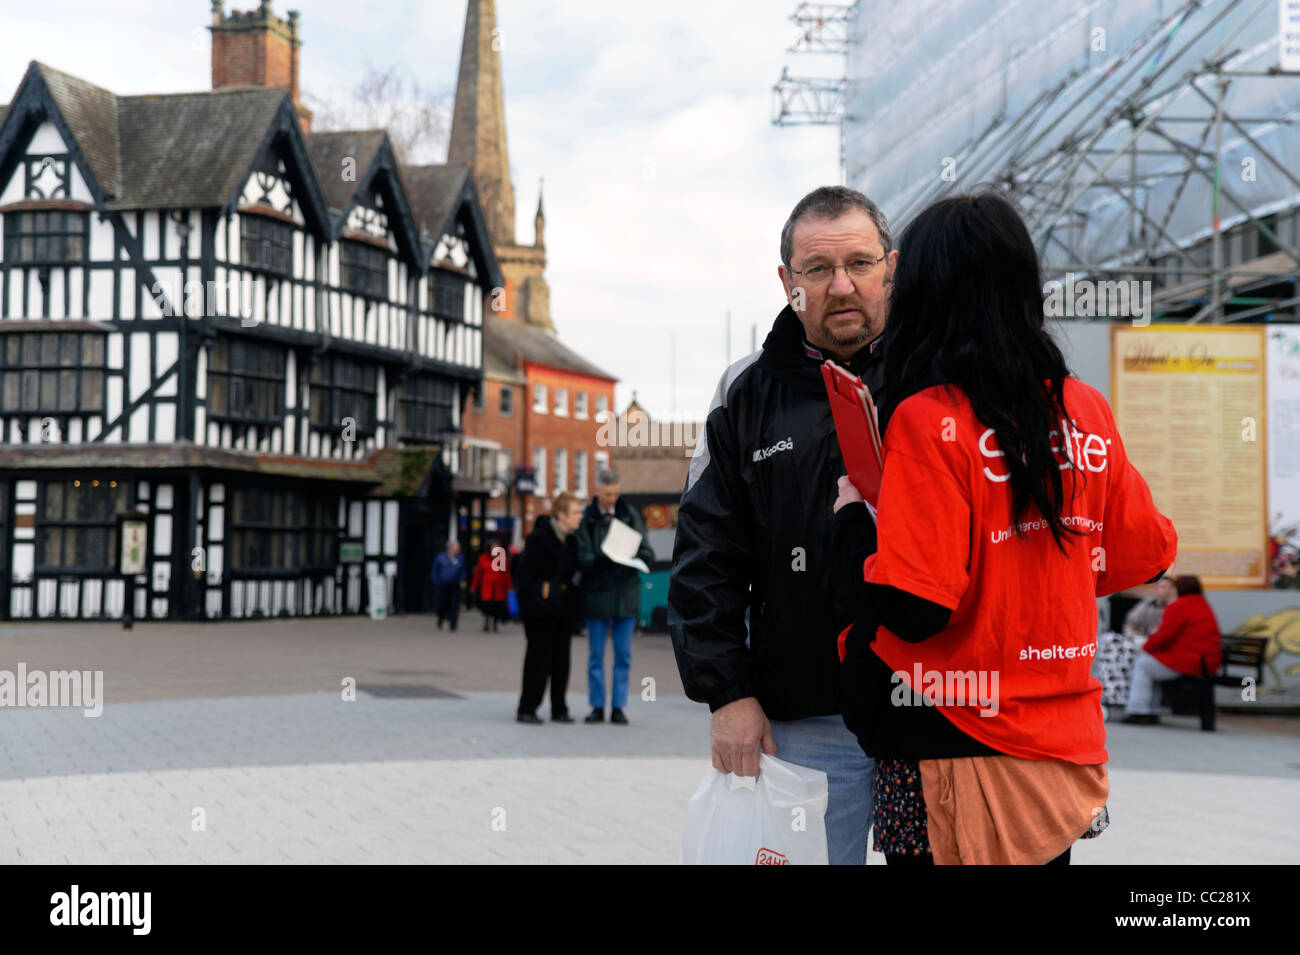 Shelter homeless charity worker fund raising in Hereford City Centre, UK. - Stock Image